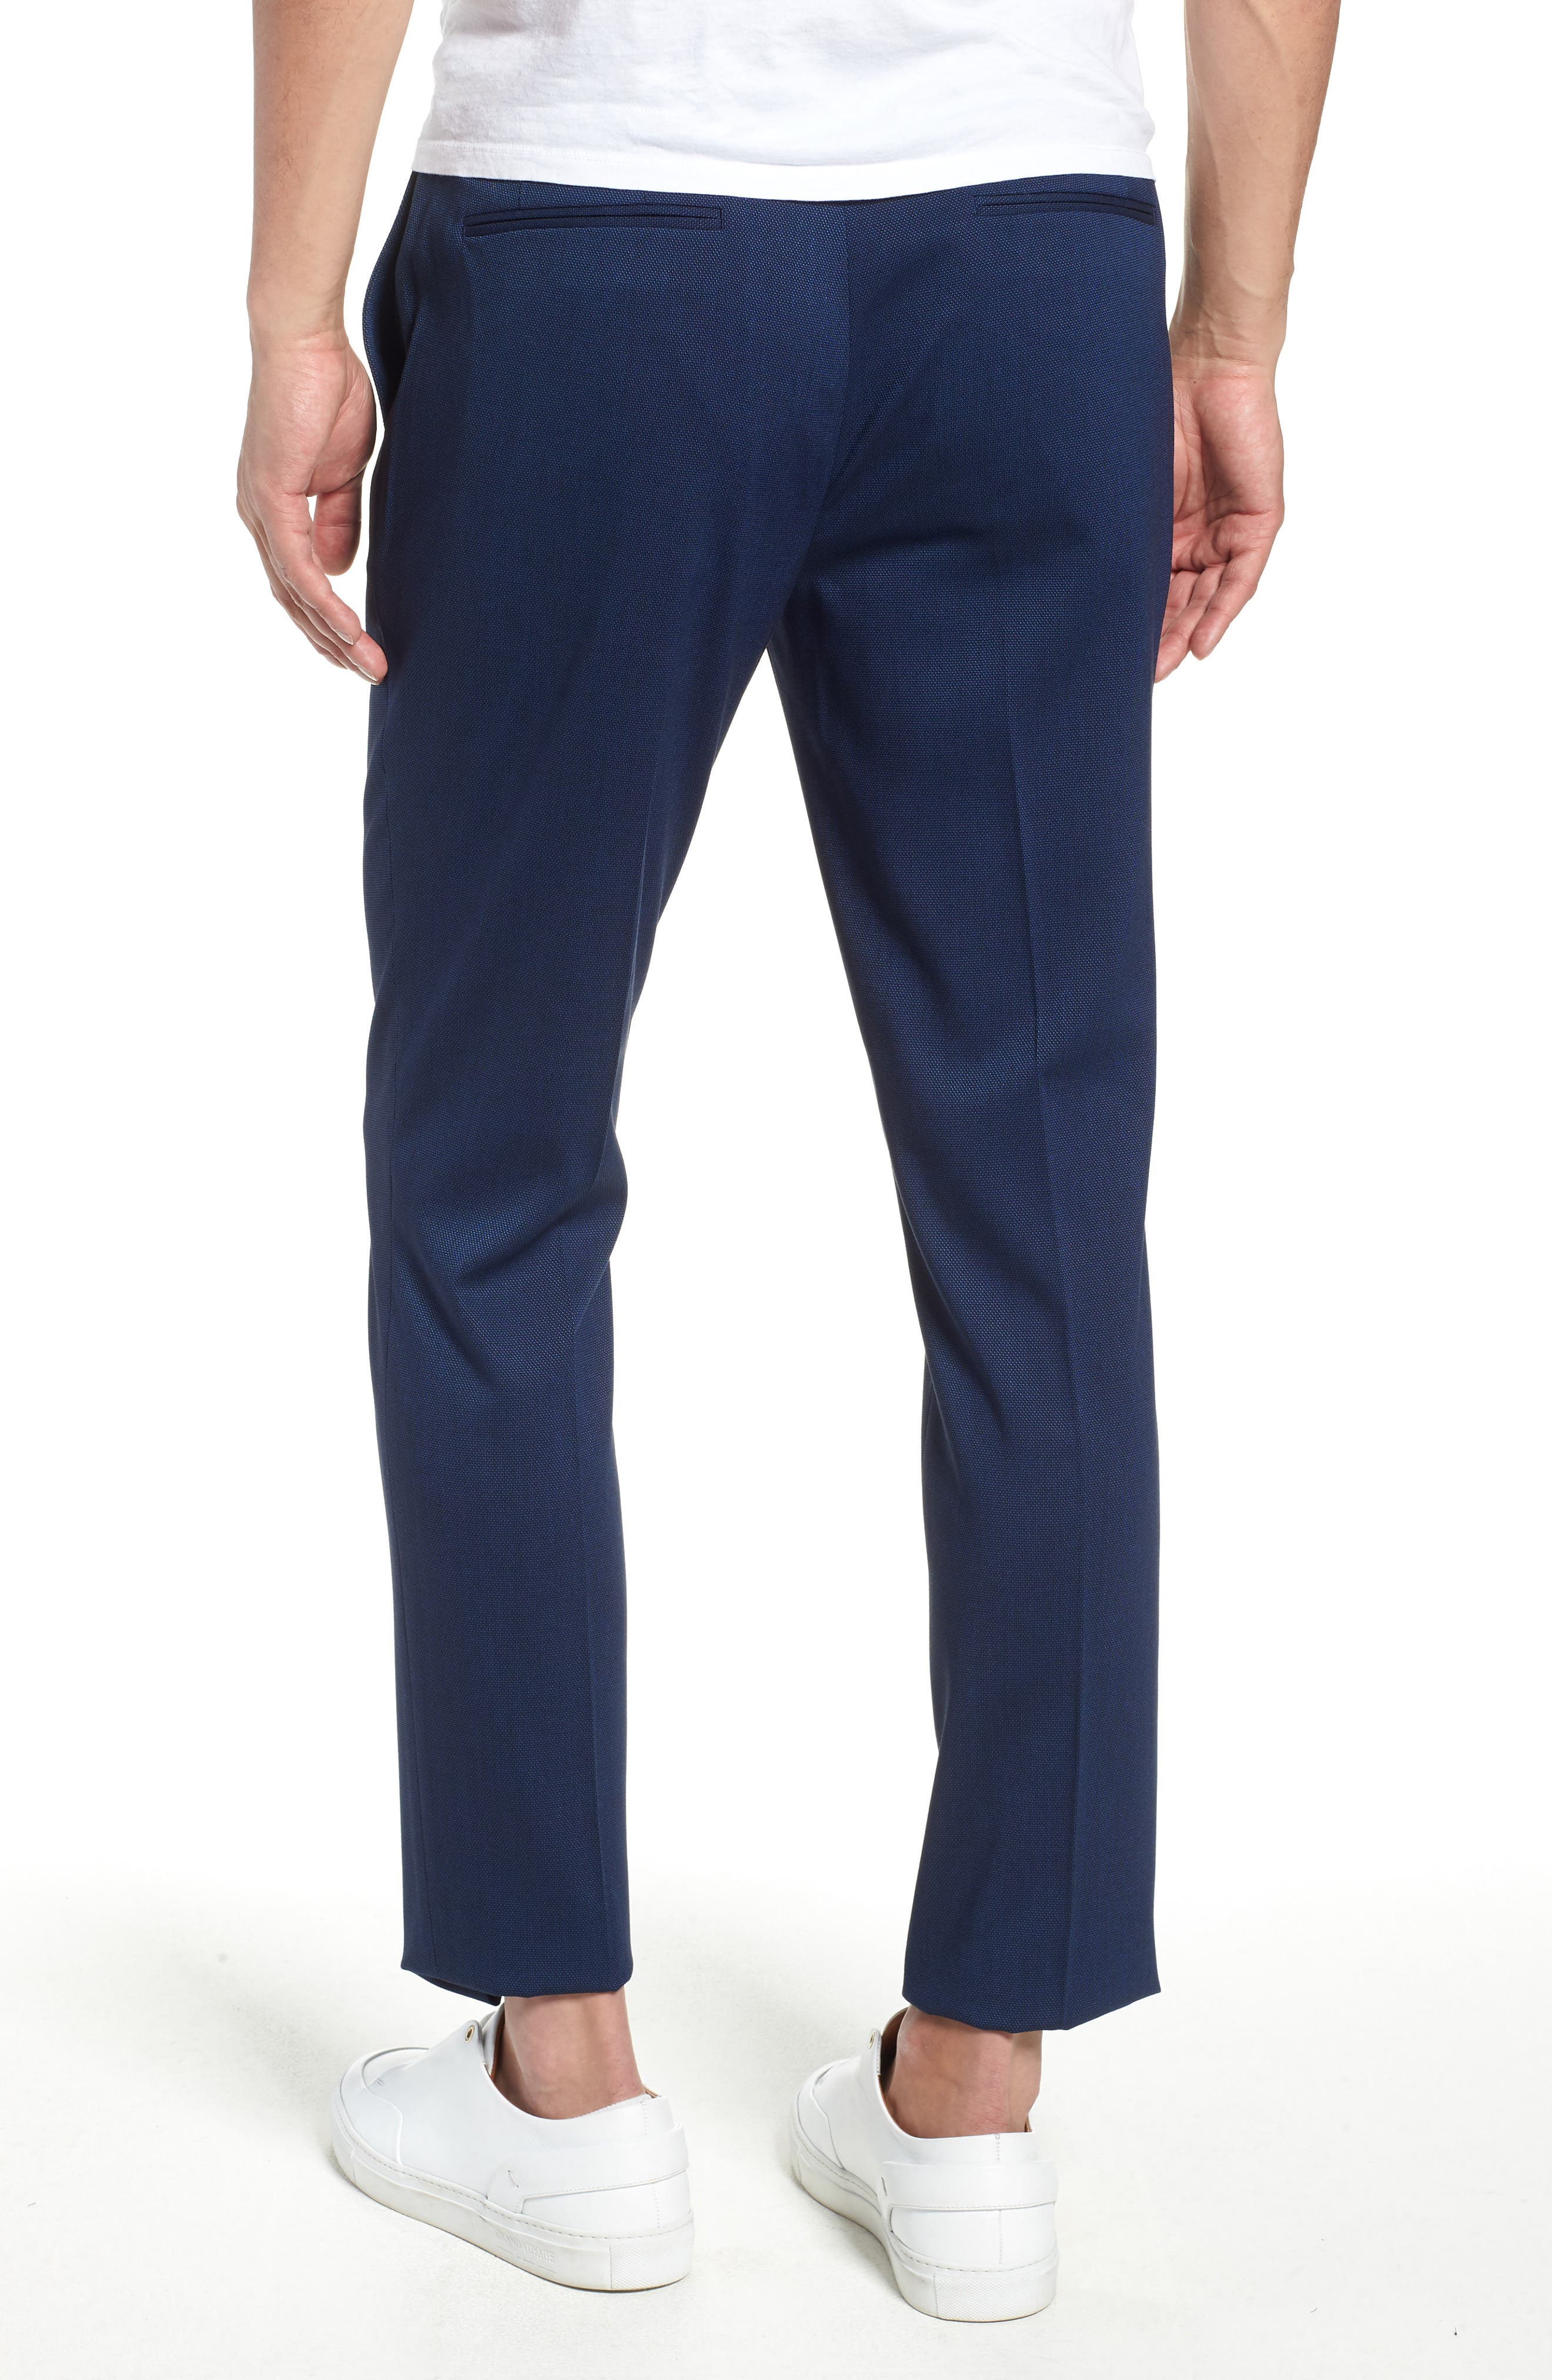 TOPMAN, Skinny Fit Suit Pants, Alternate thumbnail 2, color, MID BLUE